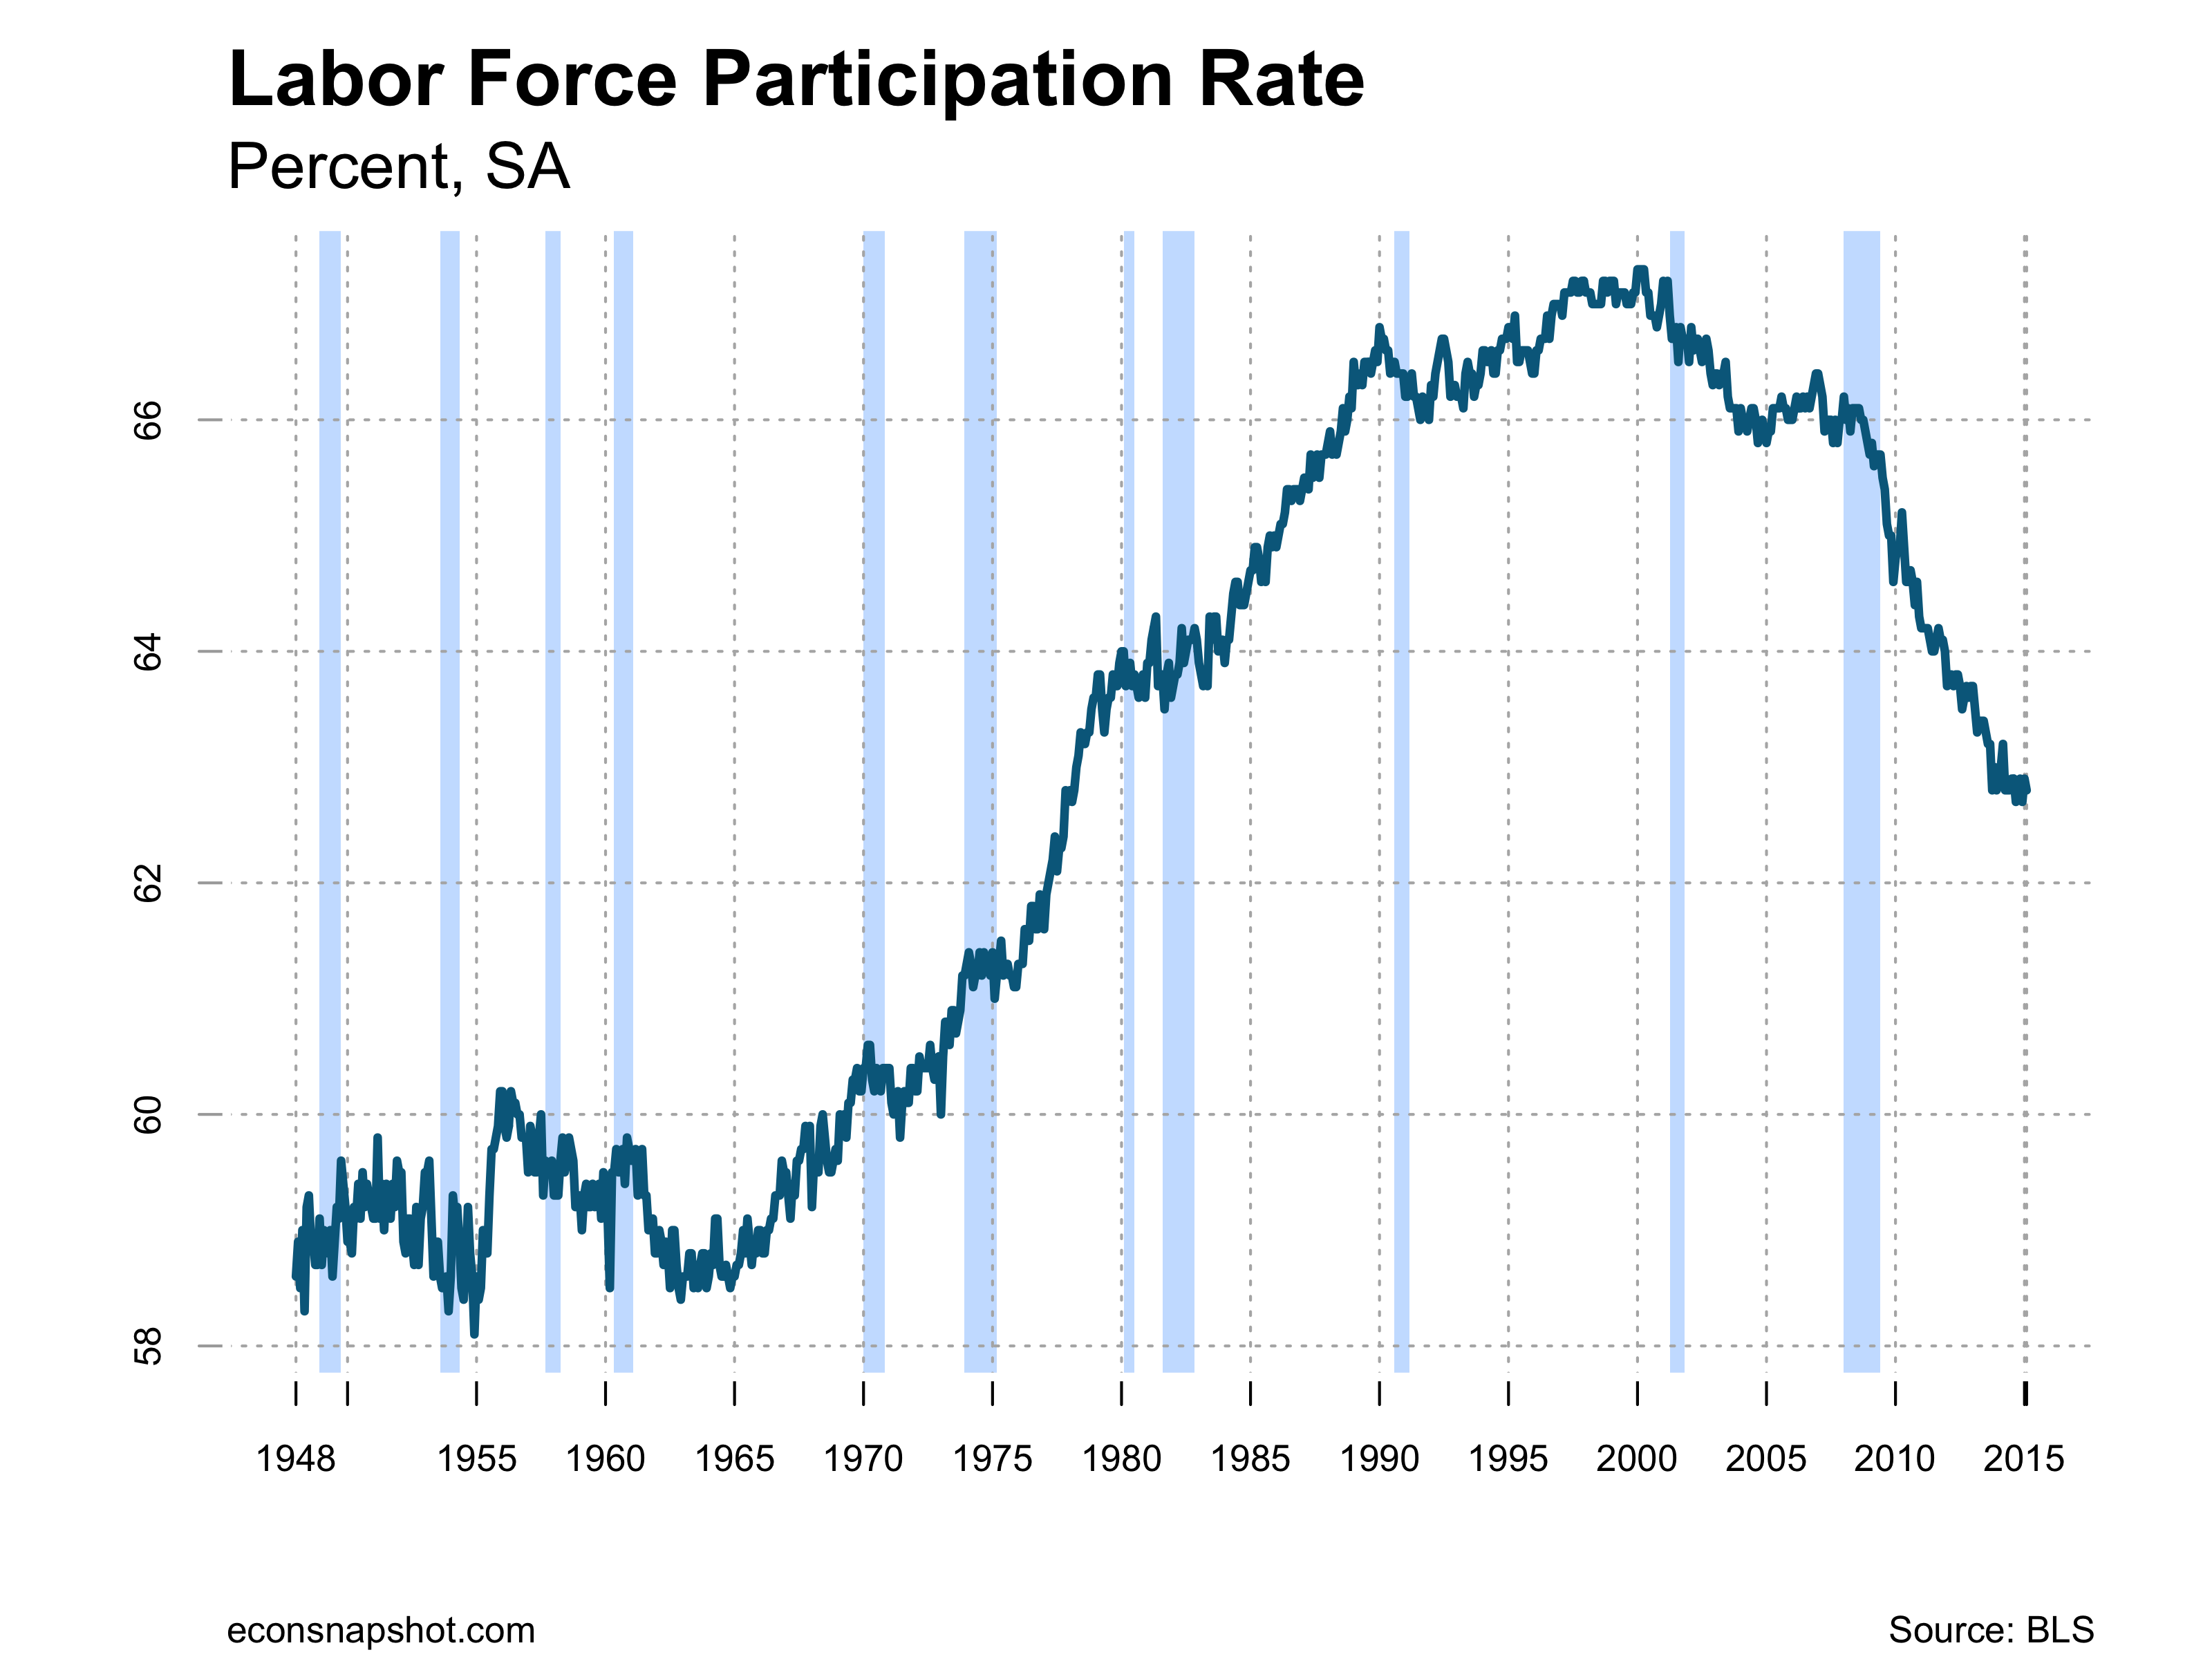 labor force participation rate The opioid crisis is hitting the labor force participation rate hard, according to princeton economist alan krueger men are affected most.